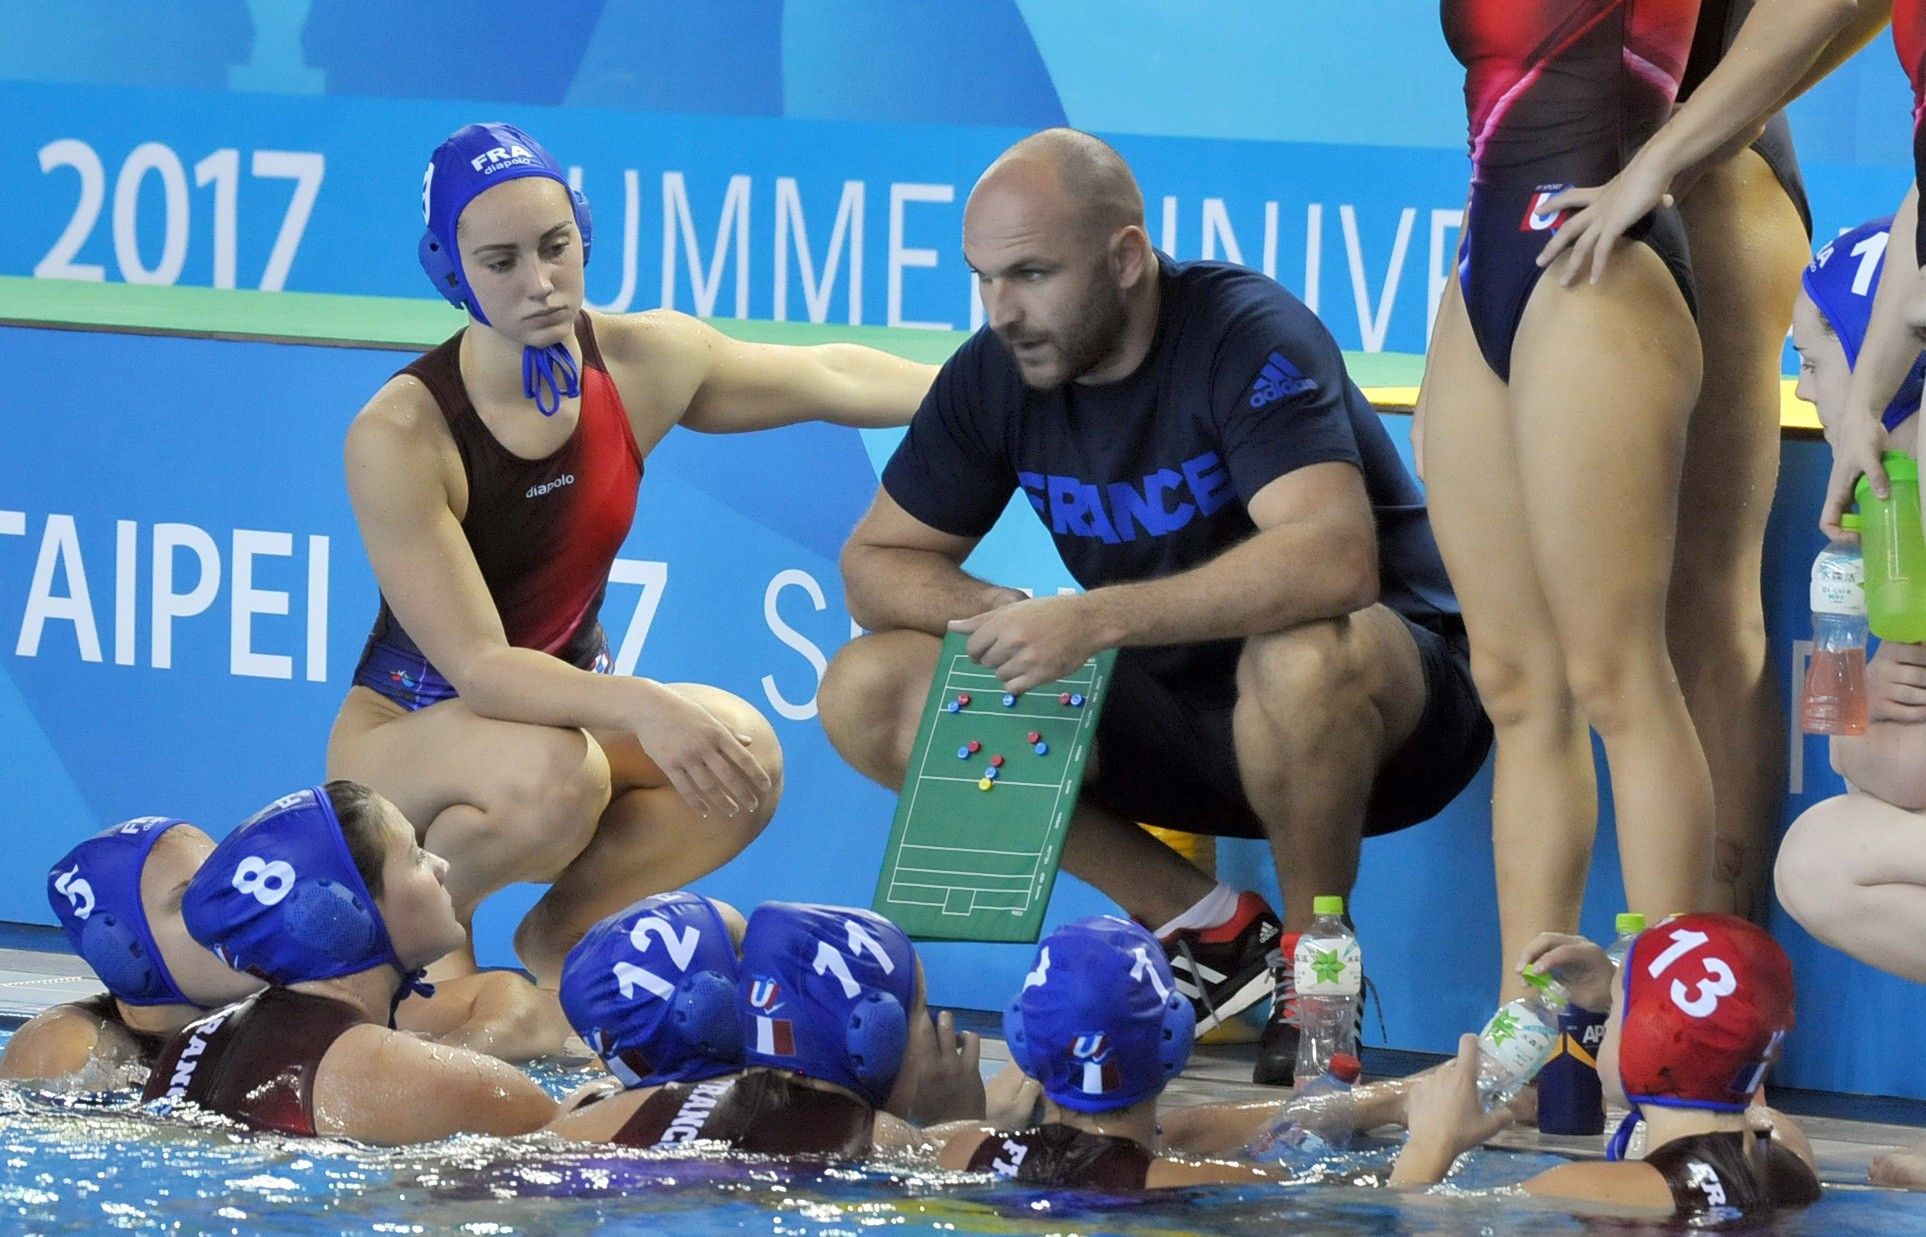 France were beaten in their first match of the women's water polo competition ©Taipei 2017